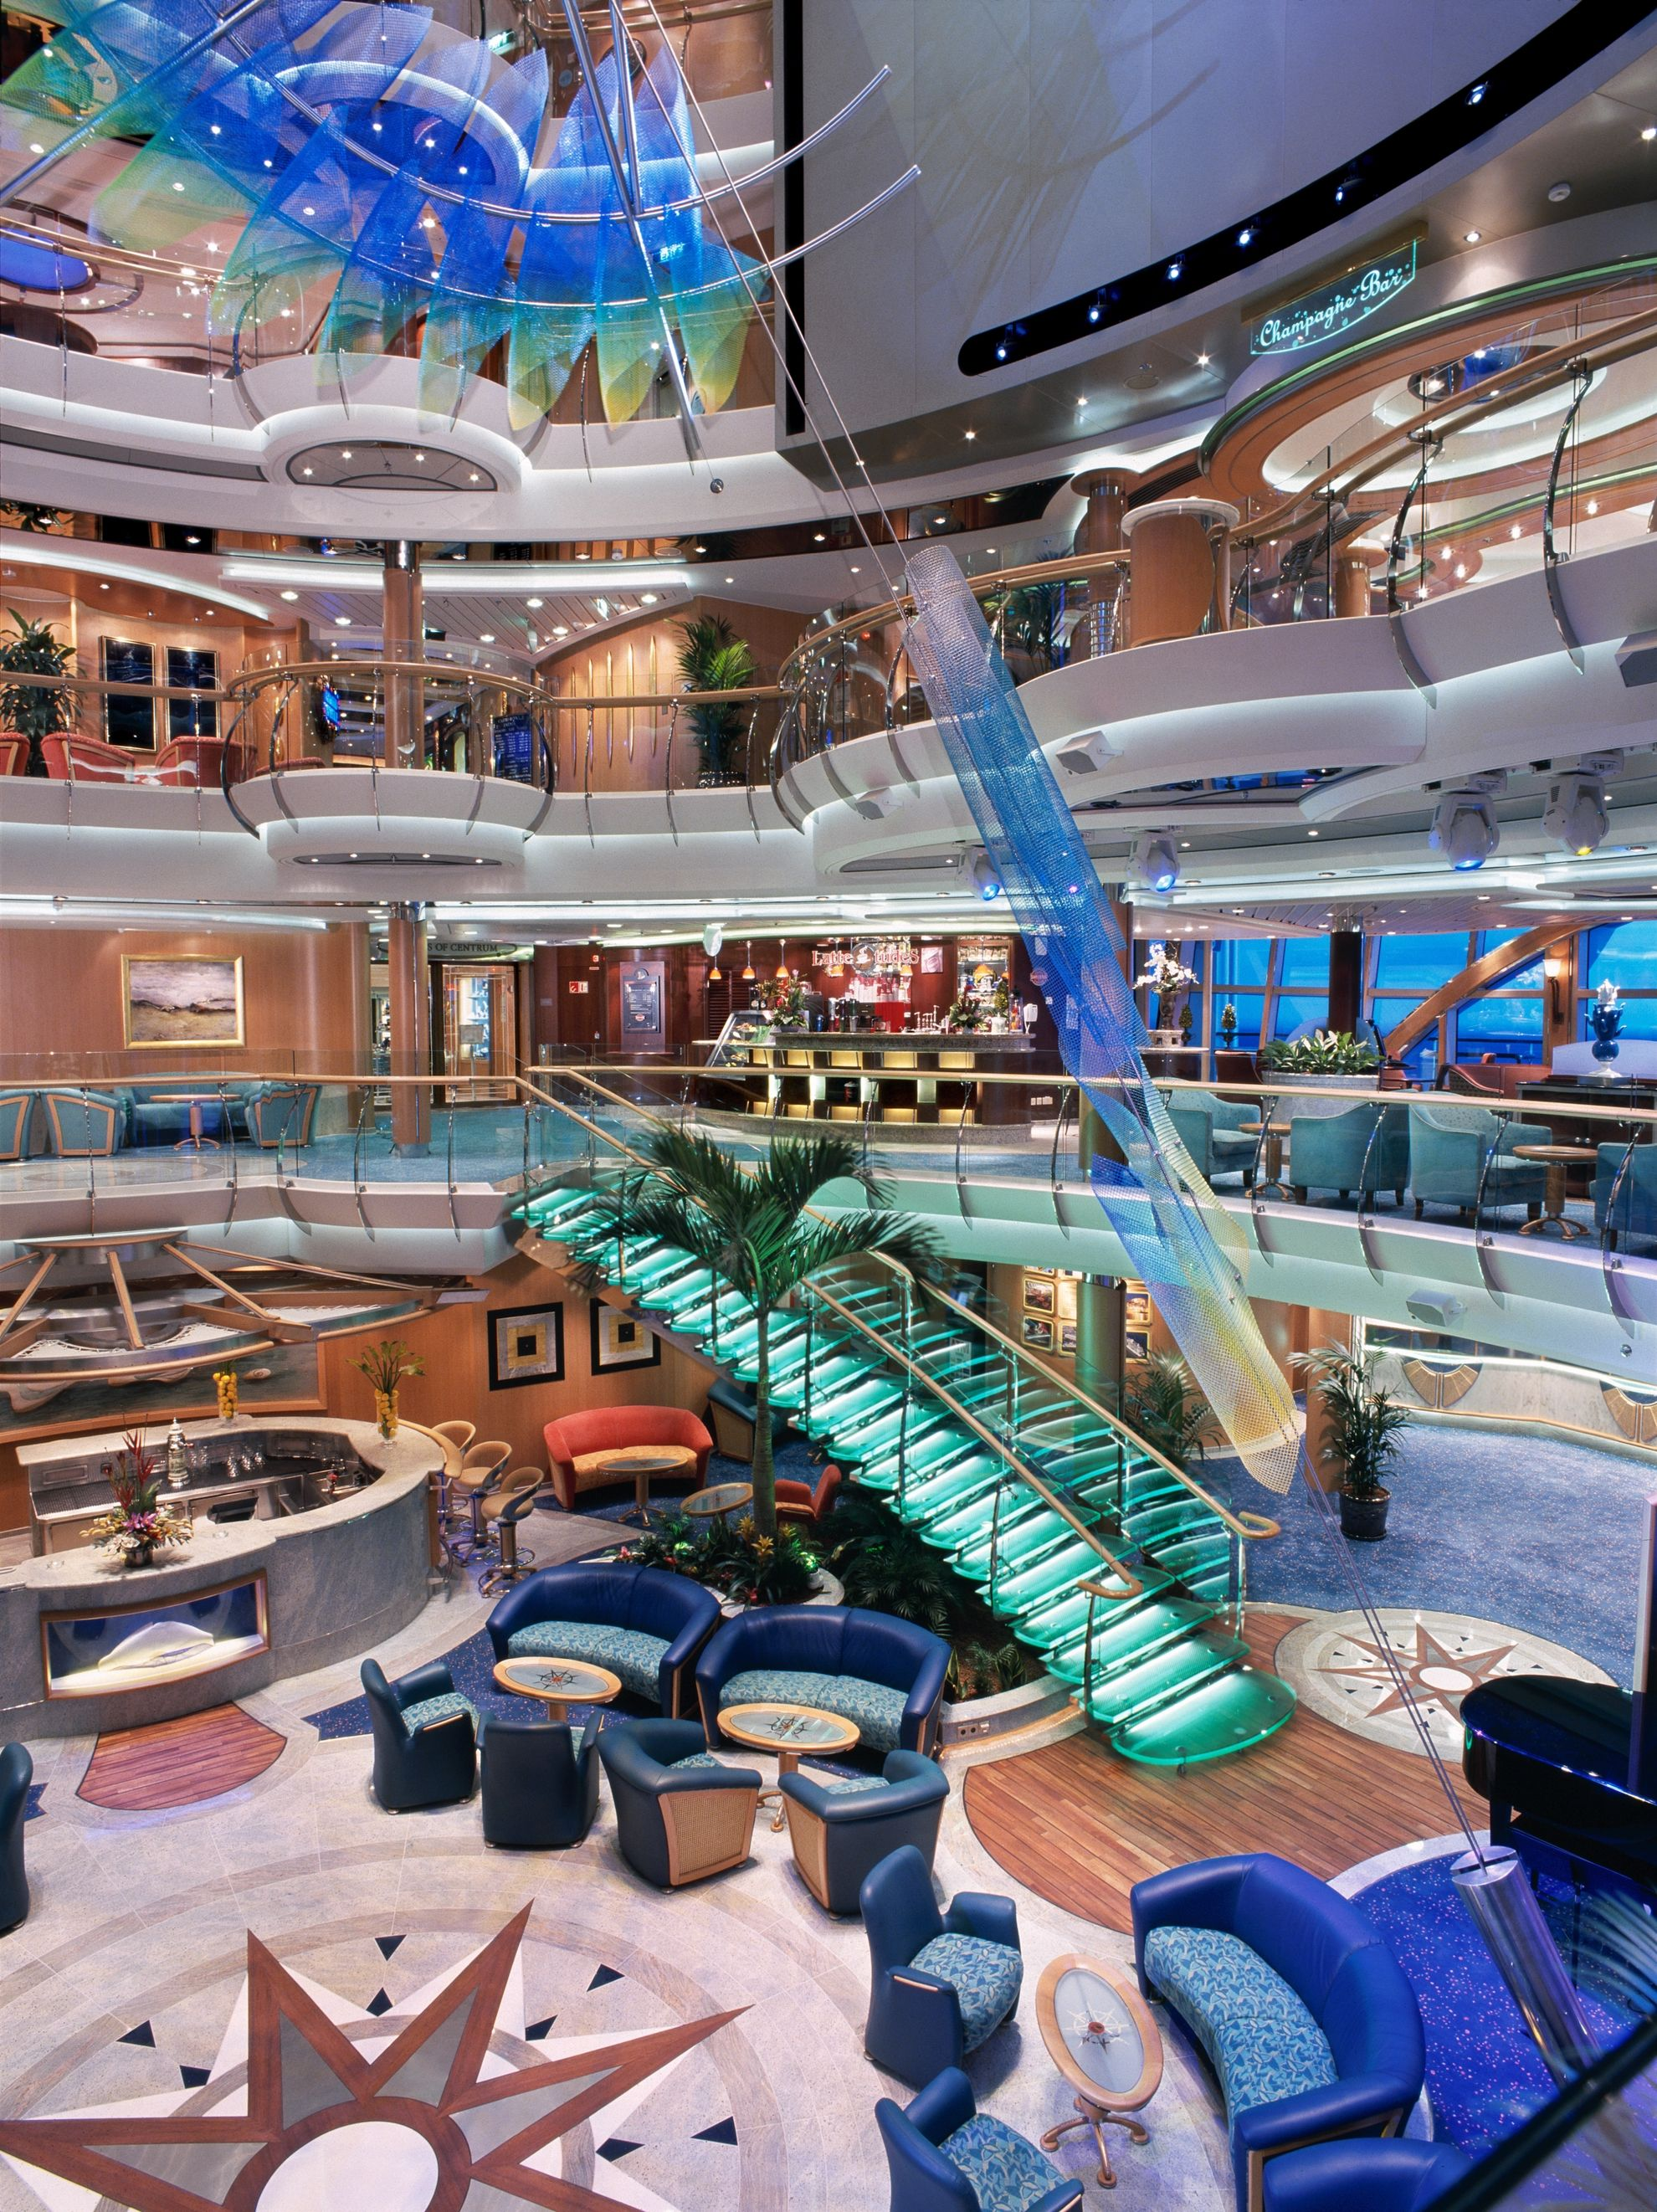 You won't believe your eyes - #SerenadeOfTheSeas is a beauty